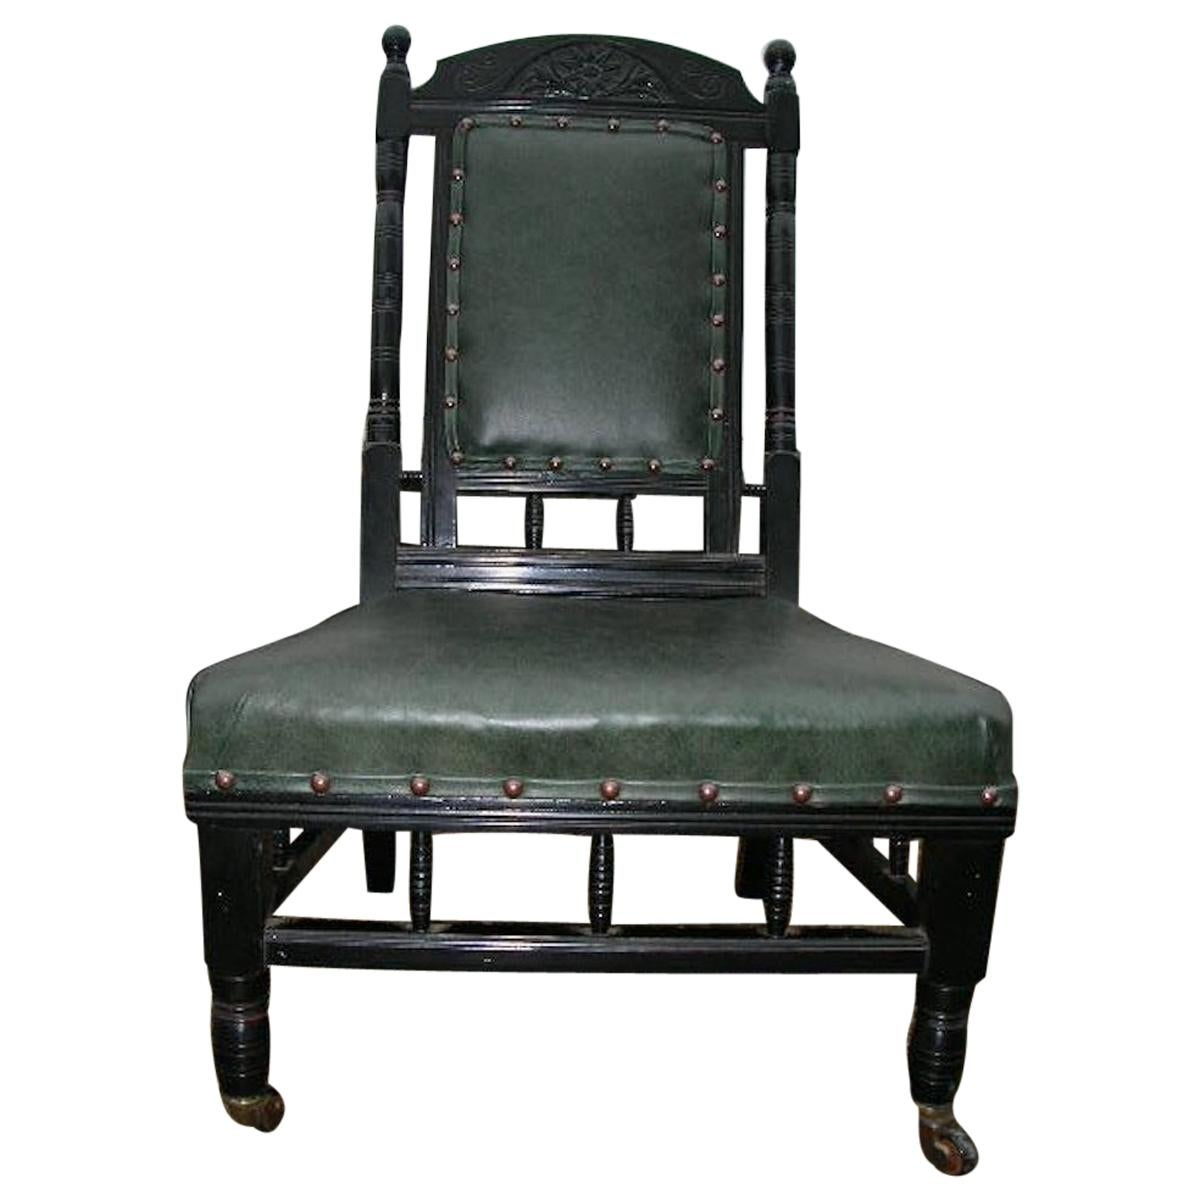 Gregory & Co. London, an Aesthetic Nursing Chair with Stylized Carved Sunflower